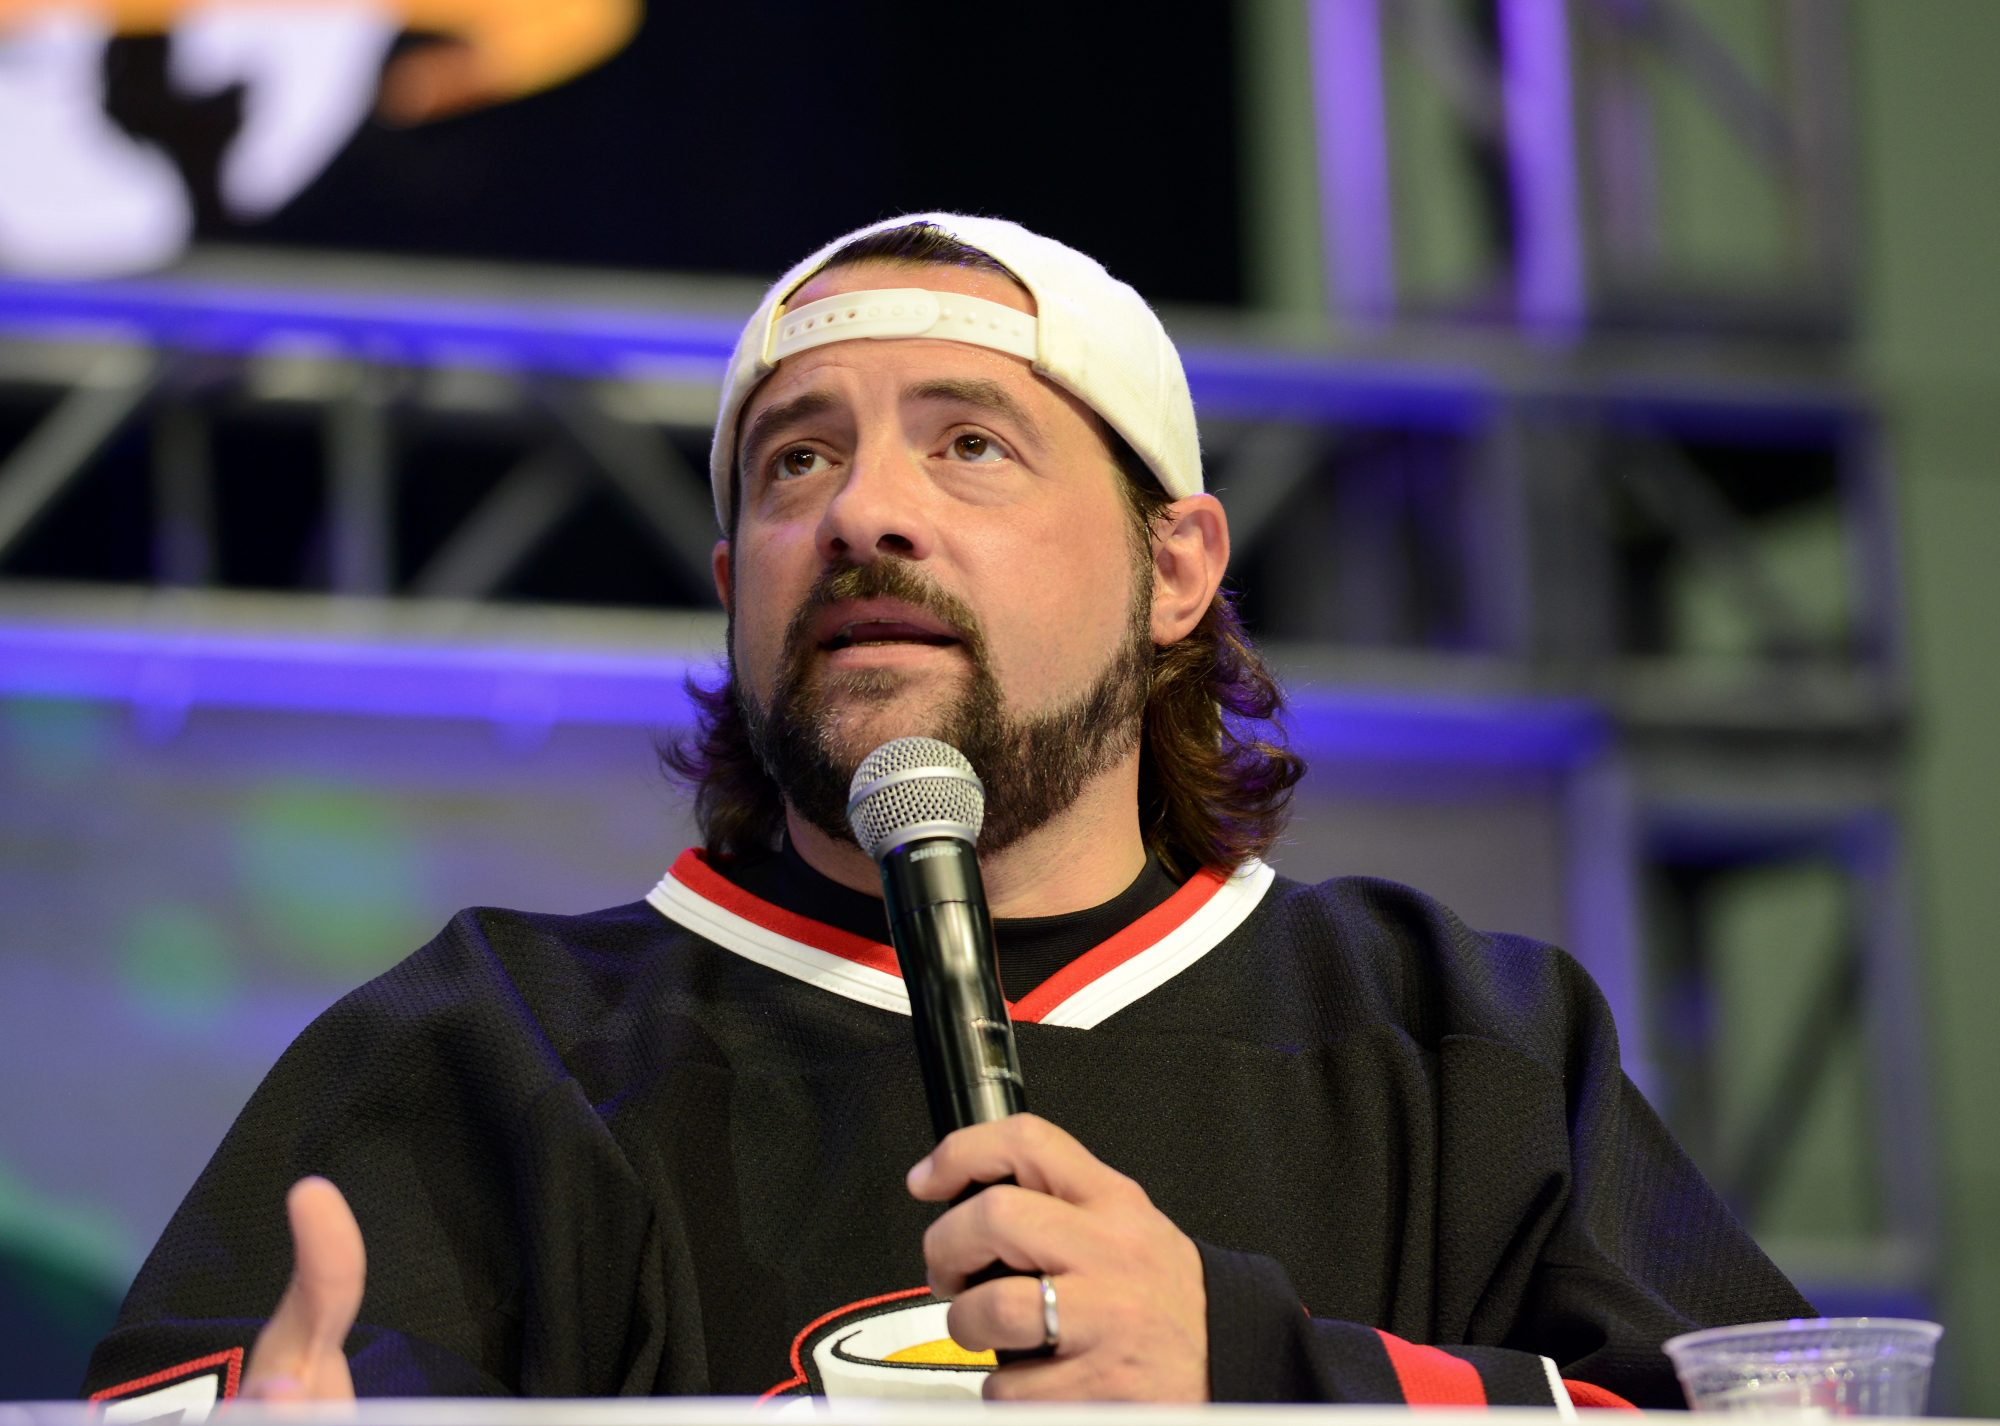 Kevin Smith Had a 'Widowmaker' Heart Attack. Here's What That Means